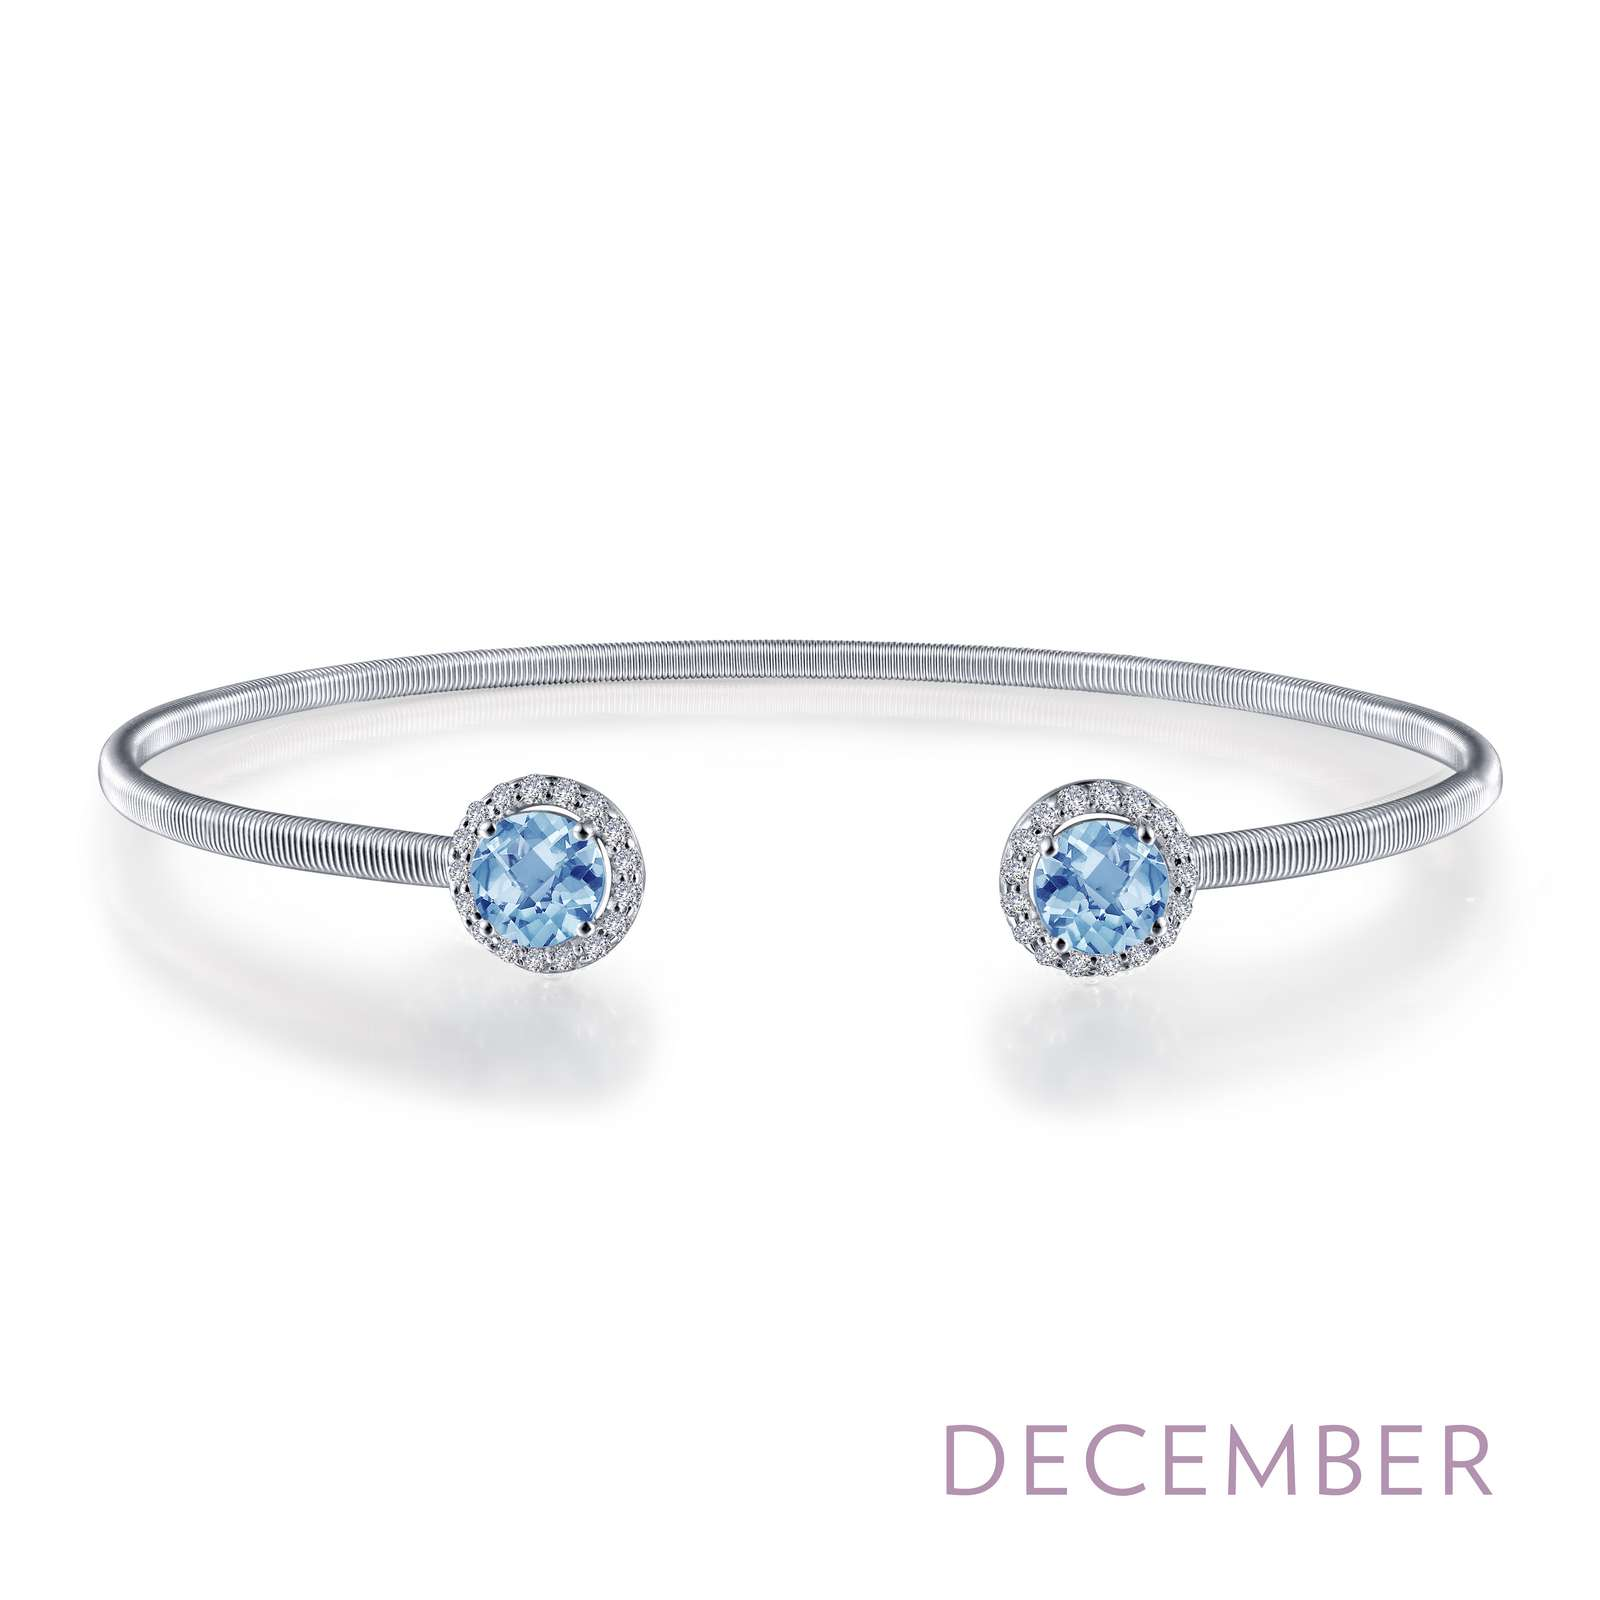 December - Blue Topaz. Adorn yourself with Lafonn's birthstone jewelry. This flexible stackable open cuff halo bangle bracelet is set with Lafonn's signature Lassaire simulated diamonds and genuine blue topazes. Bracelet is in sterling silver bonded with platinum.